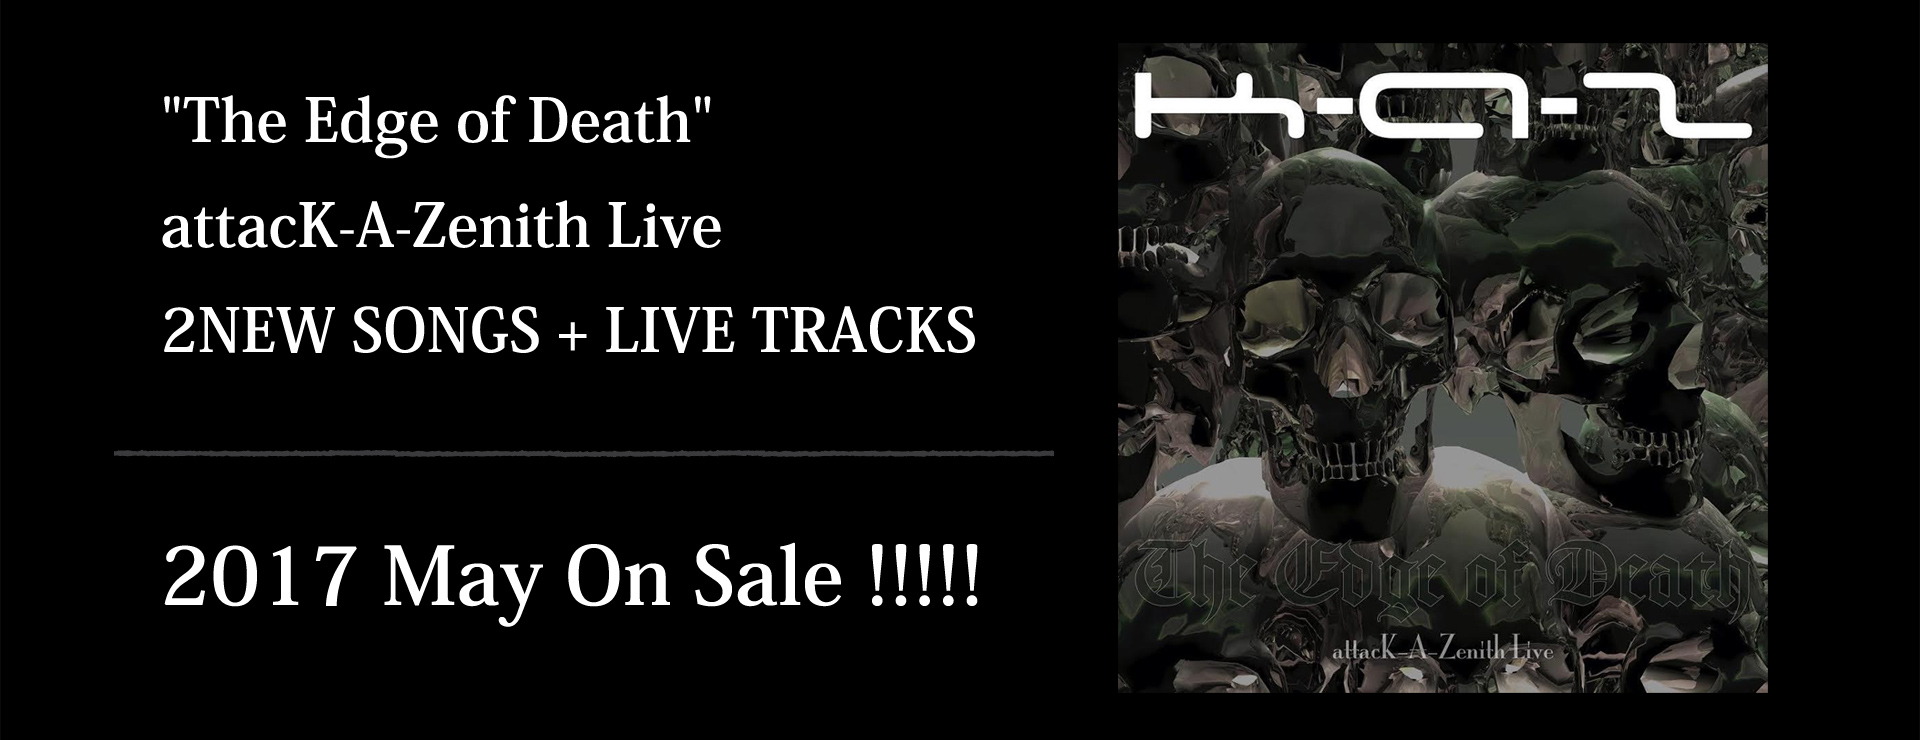 The Edge of Death ‪-attacK-A-Zenith Live-‬‬ (CD)